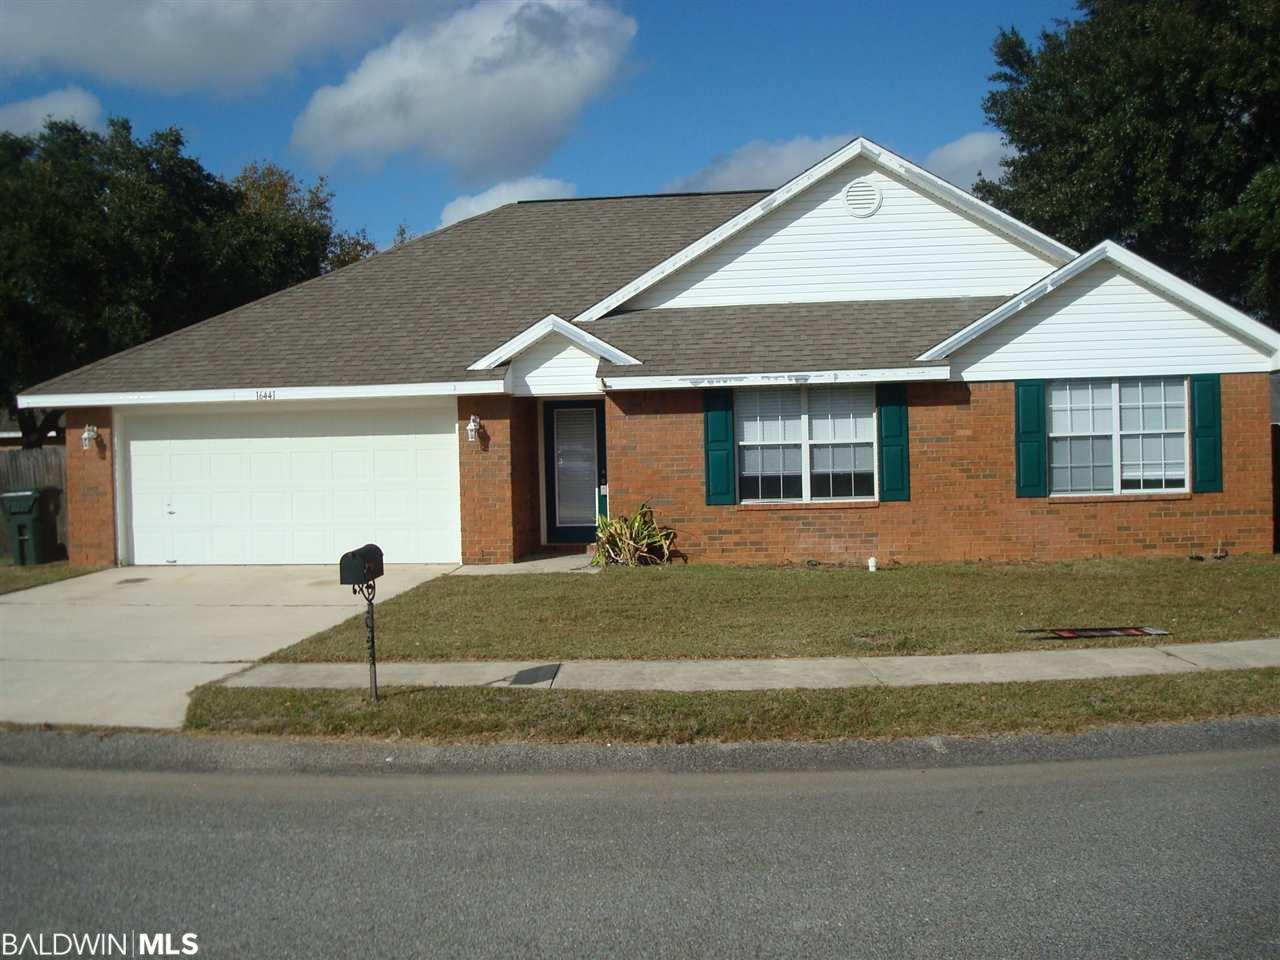 Well maintained 3 bedroom 2 bath home in this popular subdivision of Magnolia Place. Large Living Room with vaulted ceiling & wood burning fireplace, tile throughout, some new appliances, new blinds, screened back porch with fenced yard, corner lot come see your new home!!!